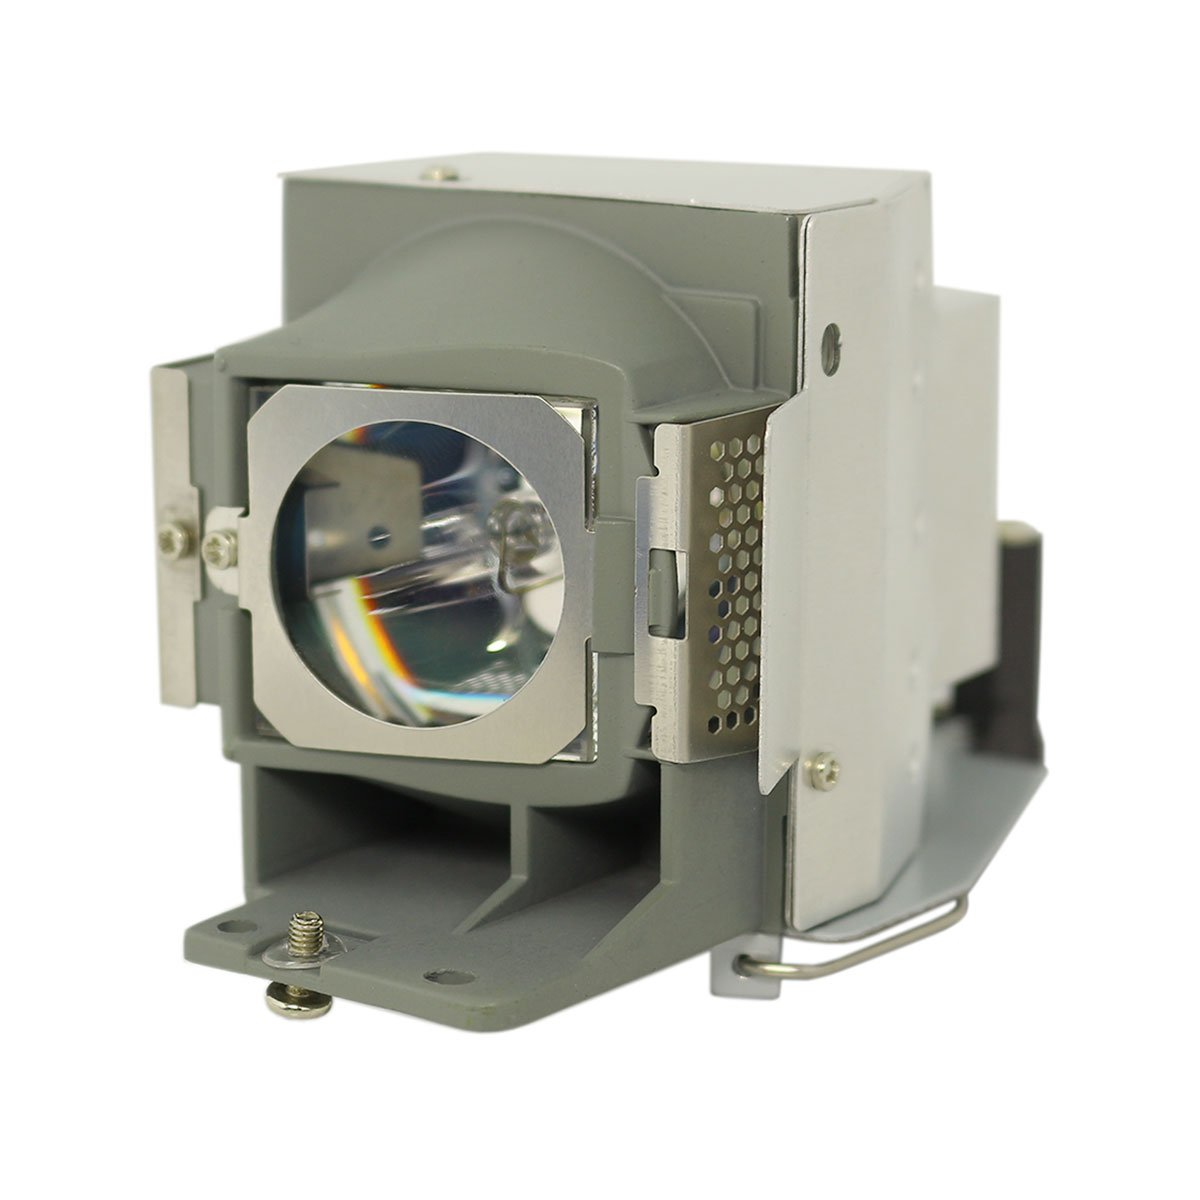 SpArc プロジェクター交換用ランプ 囲い/電球付き Acer X1311KW用 Economy Economy Lamp with Housing B07MPS52XN